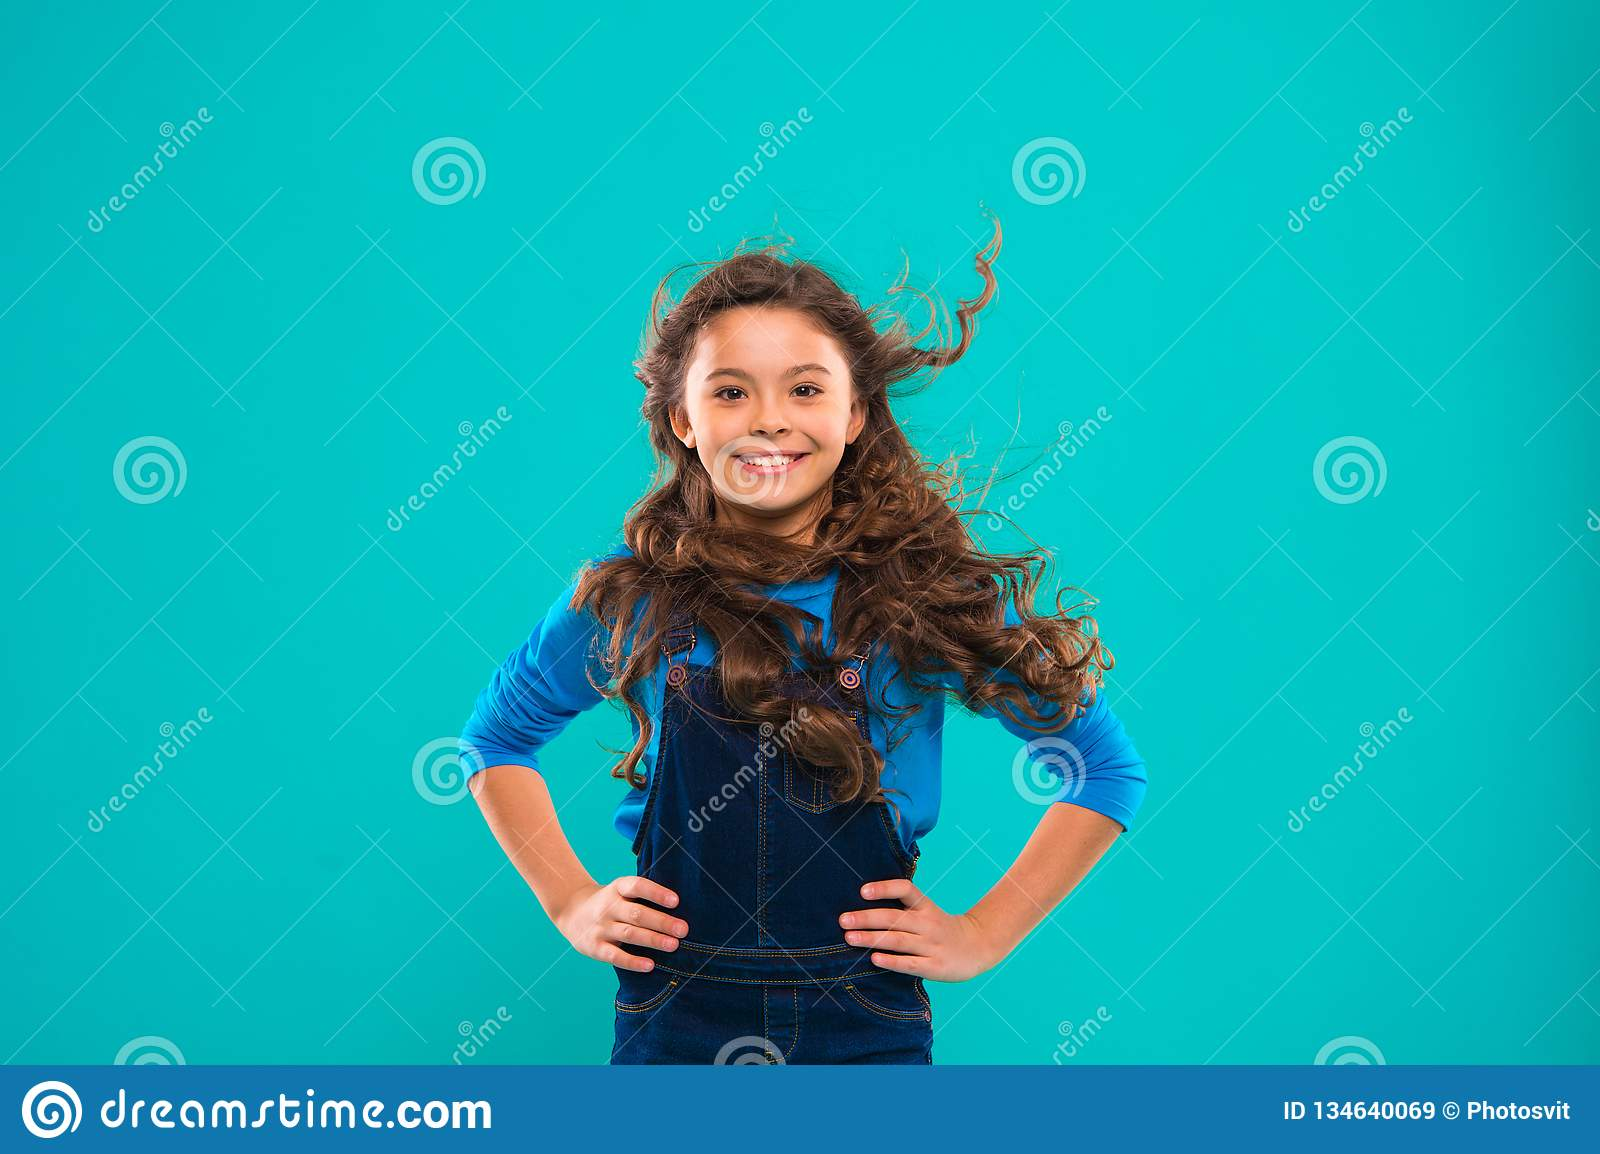 Little Girl With Long Hair Kid Happy Cute Face With